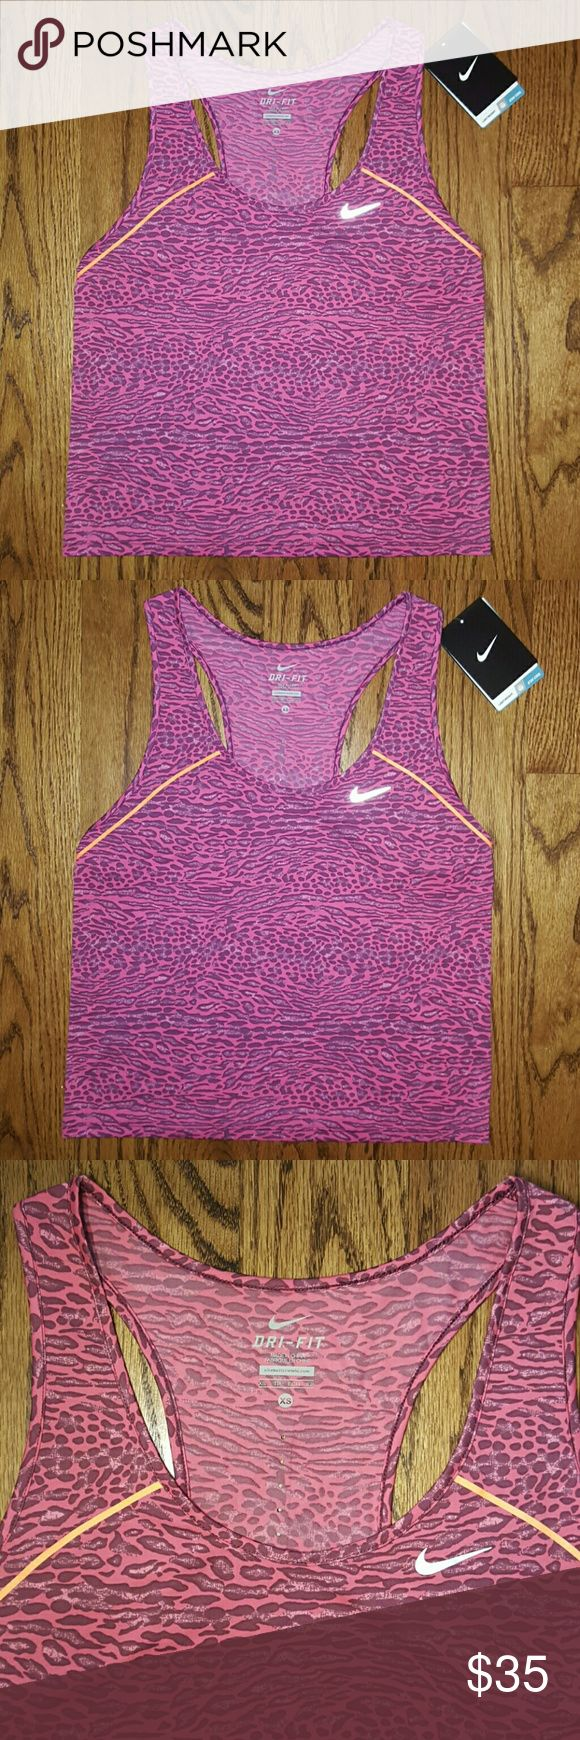 Nike Leopard Racing Crop Tank Nike Leopard Racing Crop Tank. Pink leopard print. Neon orange stripes. Reflective elements! Cropped! Size XS. New with tags! MSRP $55.00. Price is firm, not accepting offers! Nike Tops